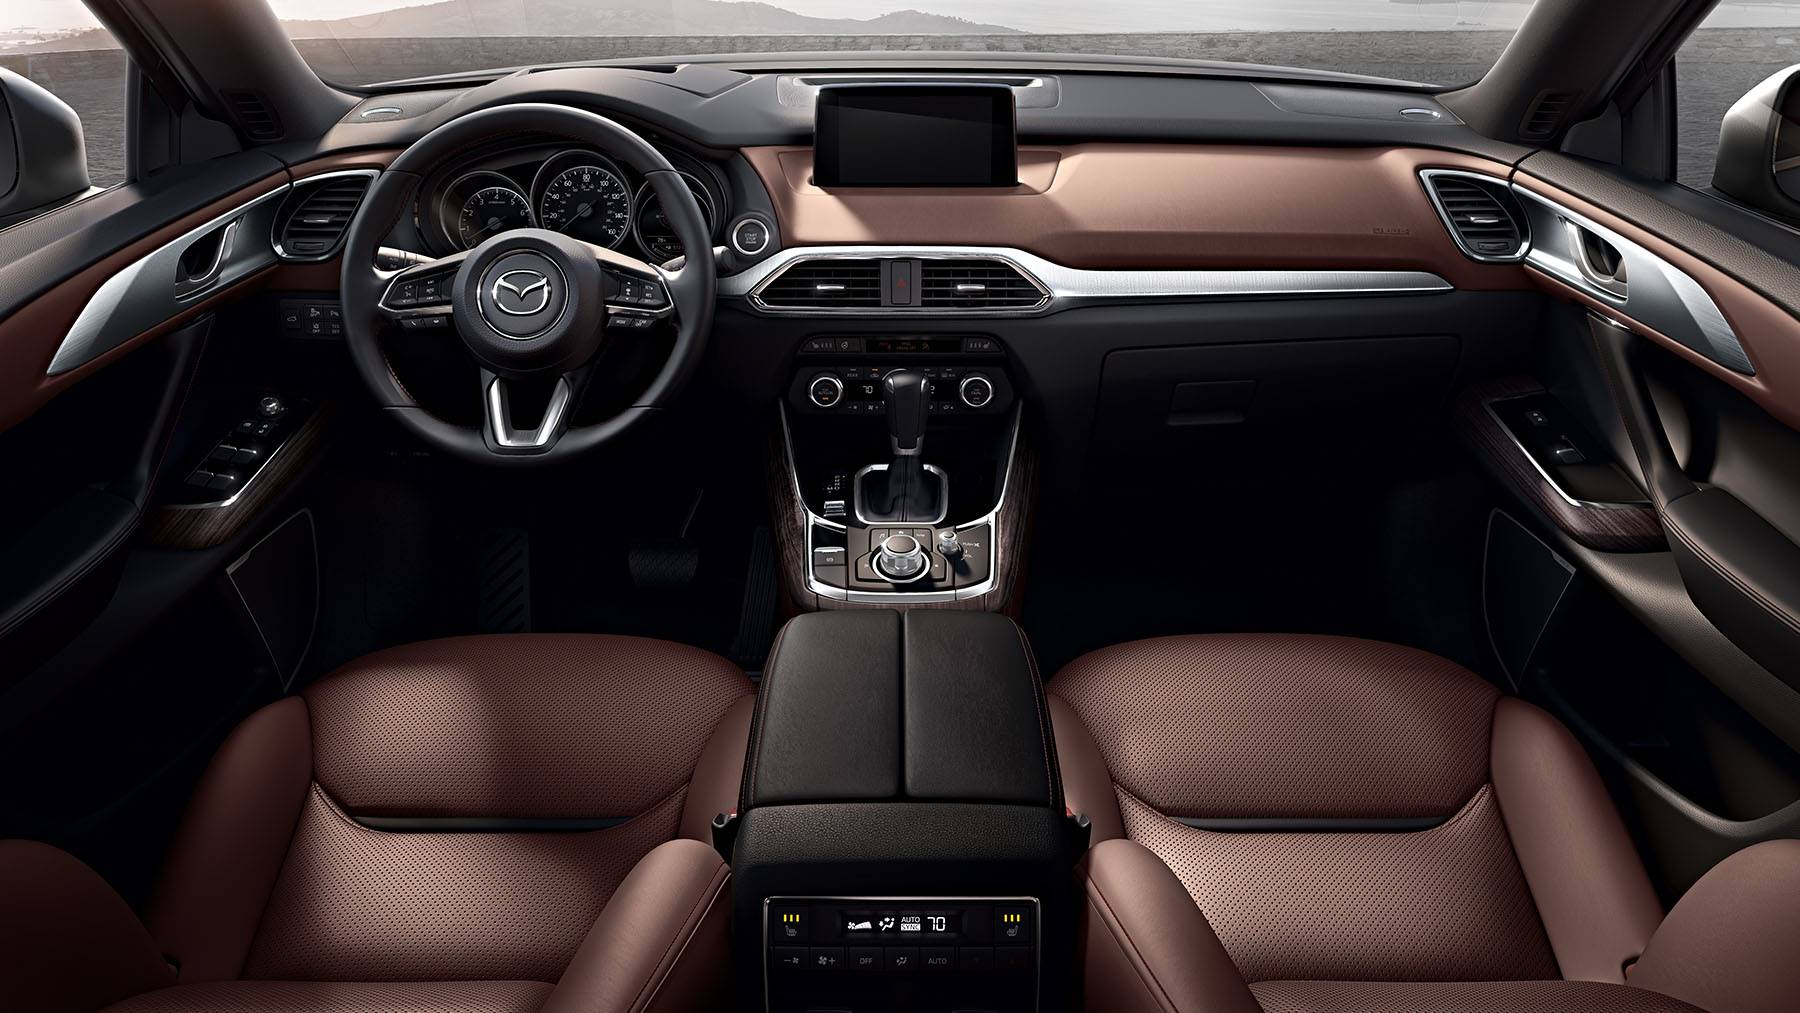 2018 Mazda CX-9 Grand Touring Leather Seating Interior